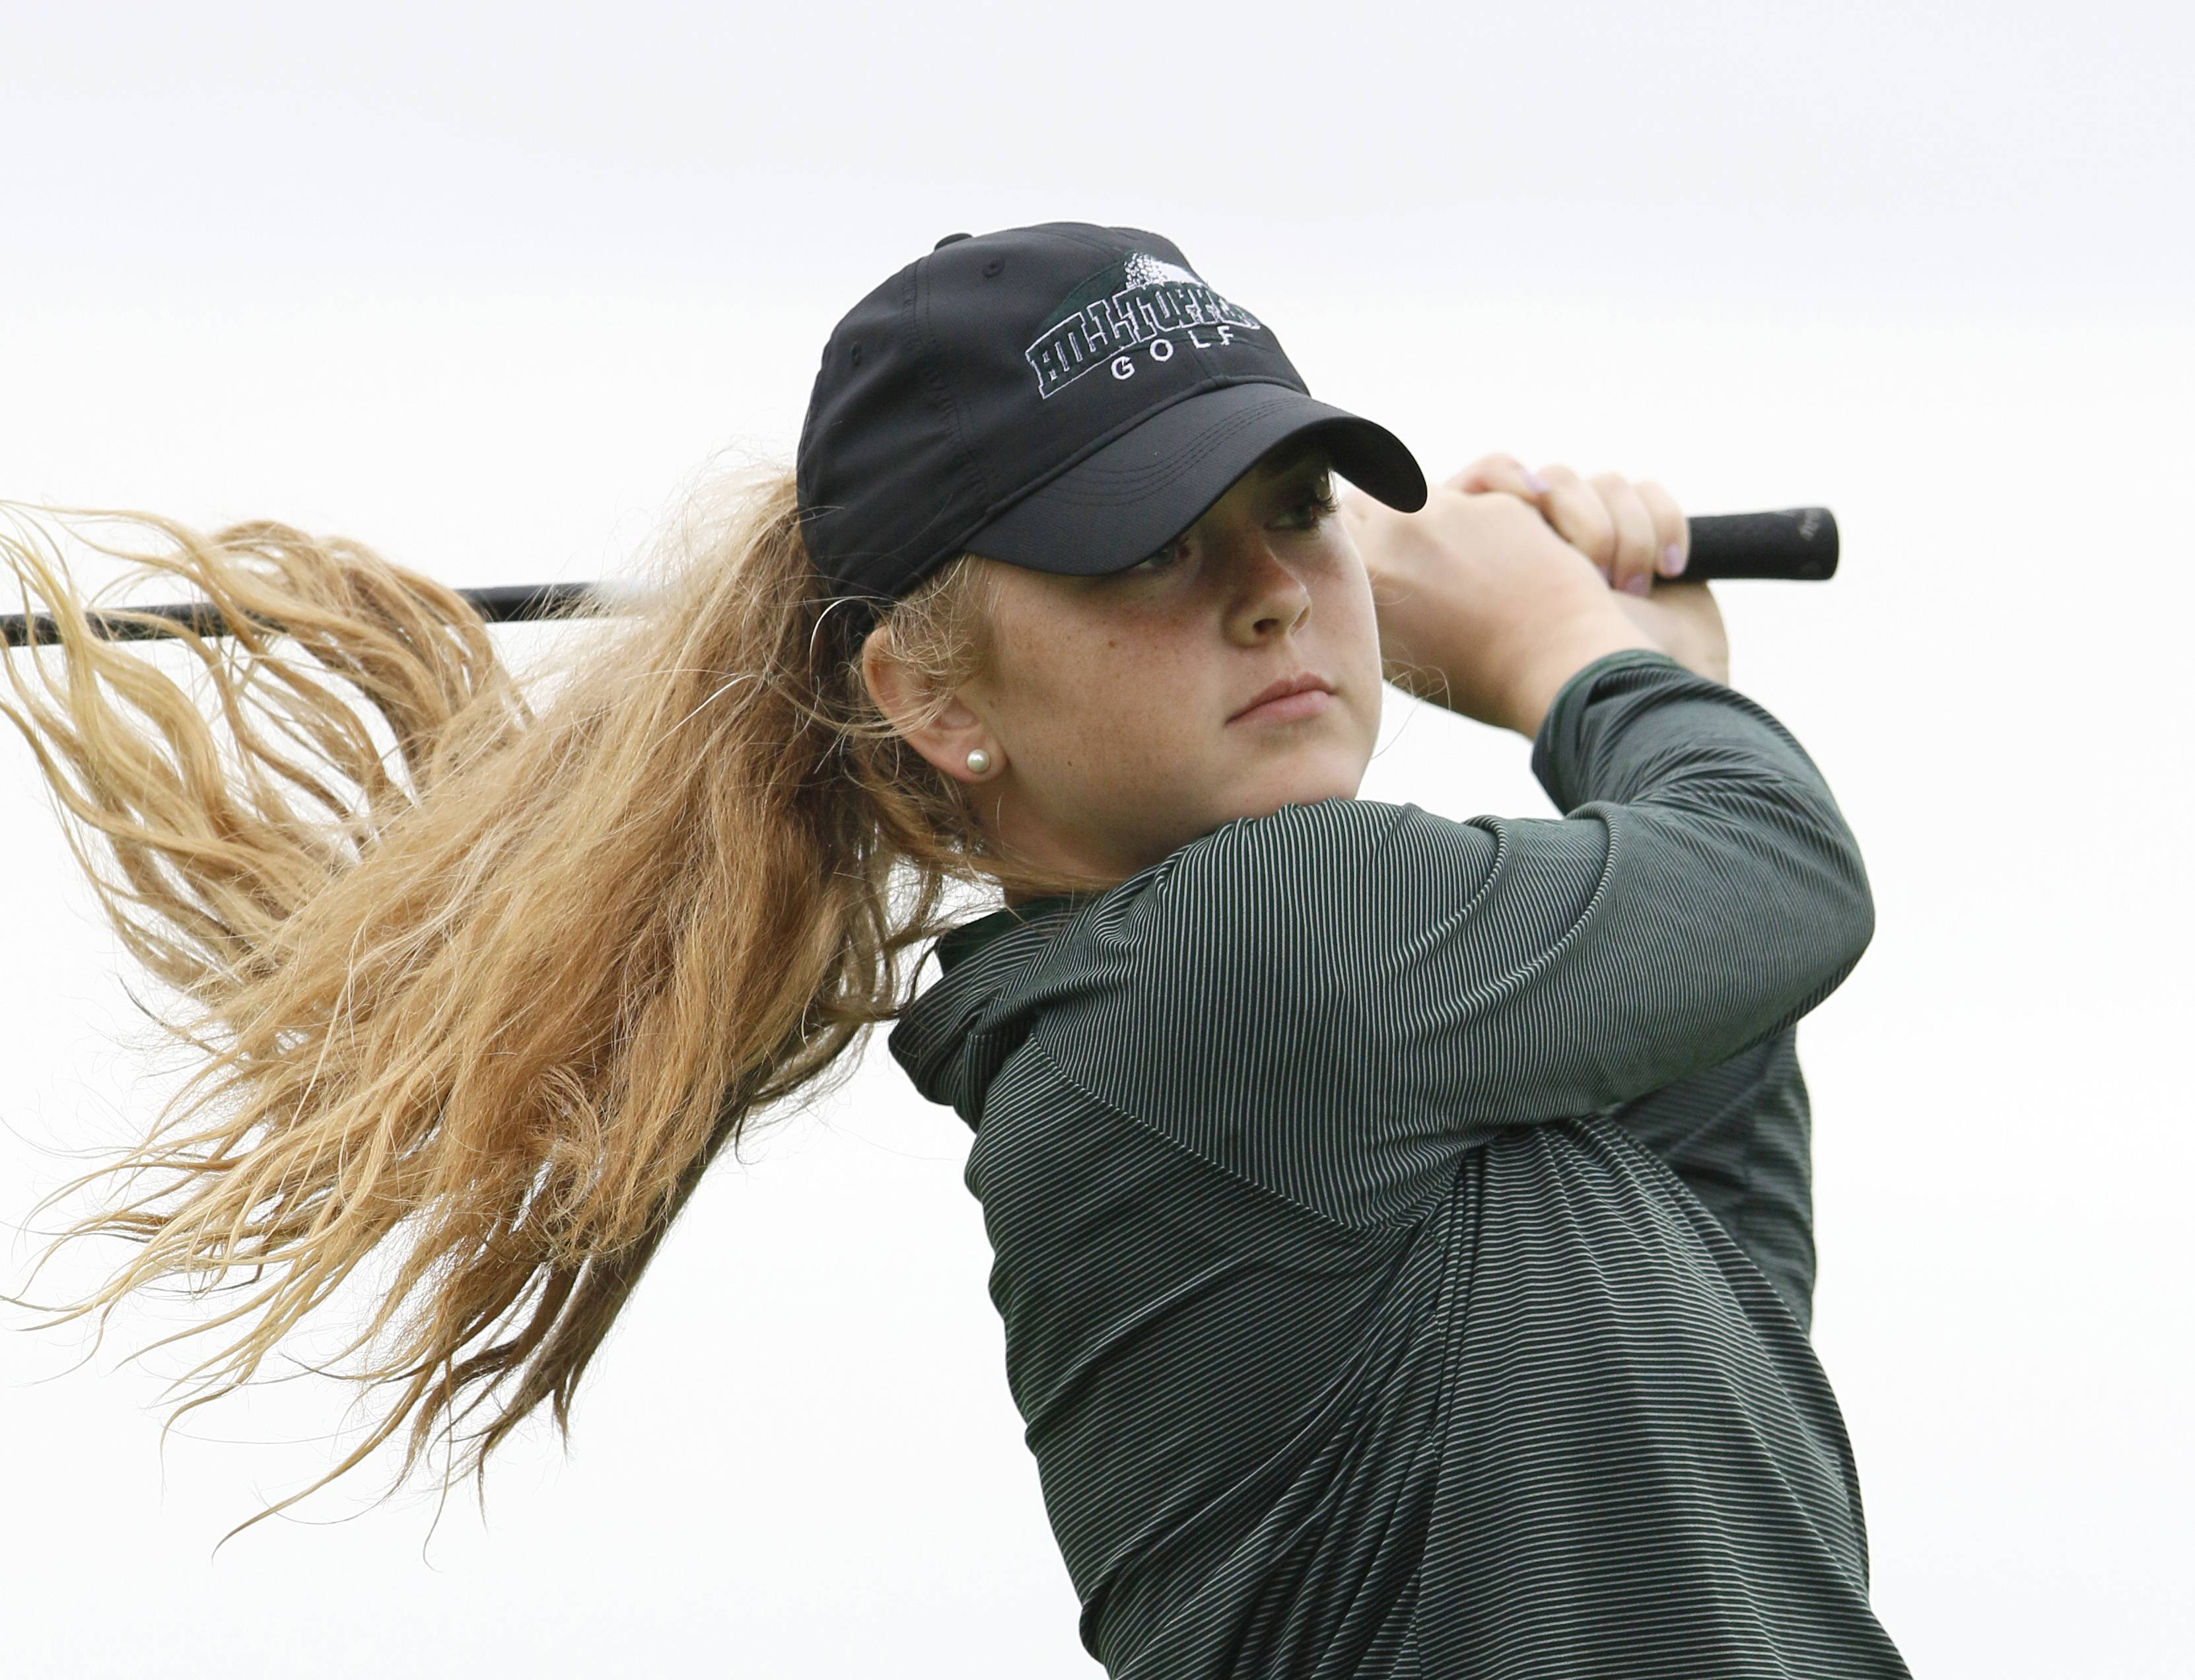 Glenbard West's Ann Bertane tees off at the 9th hole during the Class 2A Nazareth girls golf regional at Links of the Carillon golf course in Plainfield.